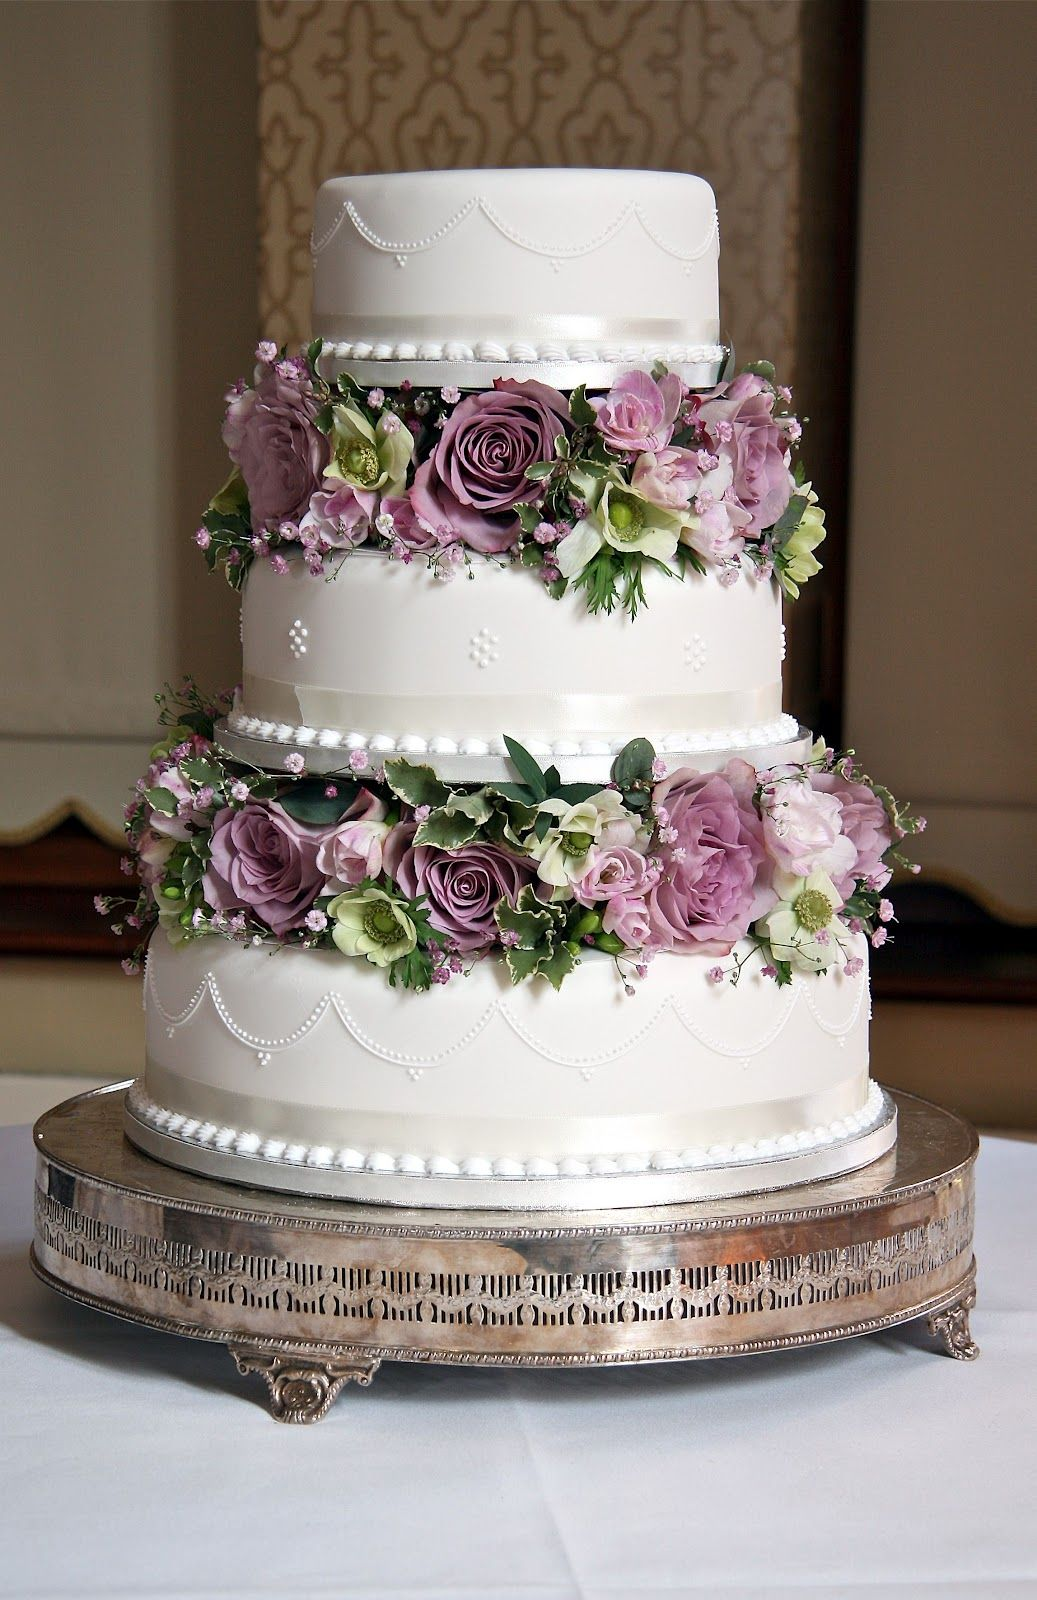 Wedding Cakes Decor Flowers And Bling Cake With In Between The Layers